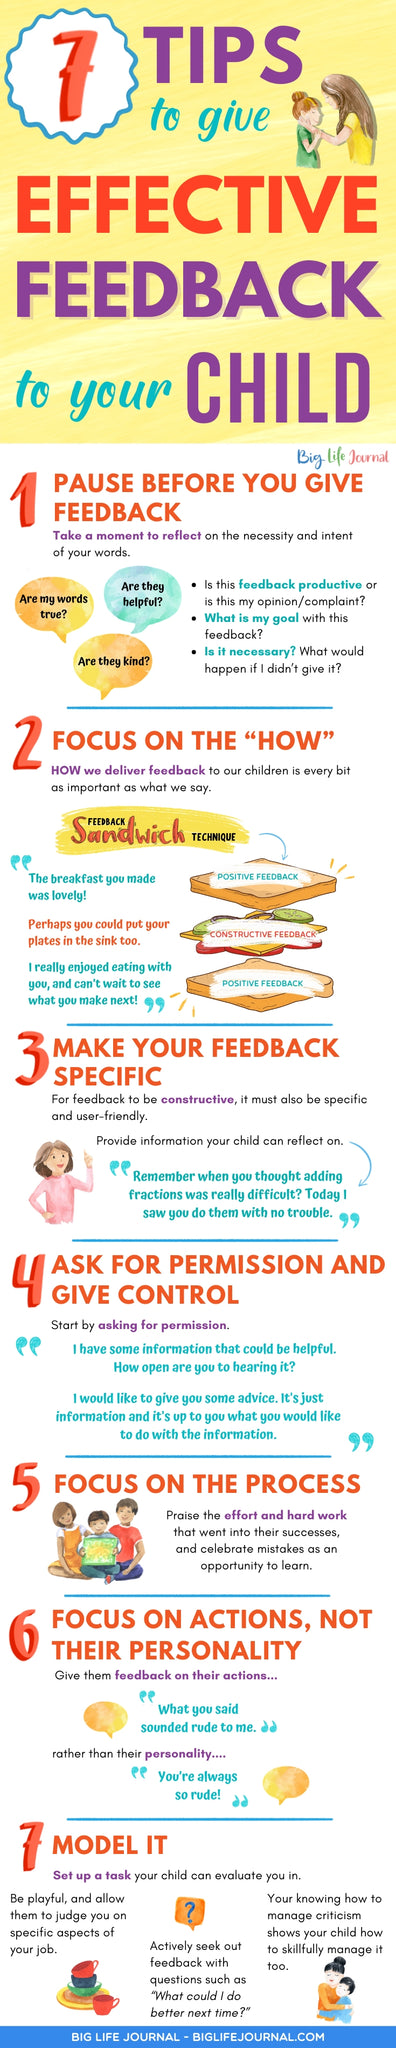 7 Tips to Give Effective Feedback to Your Child